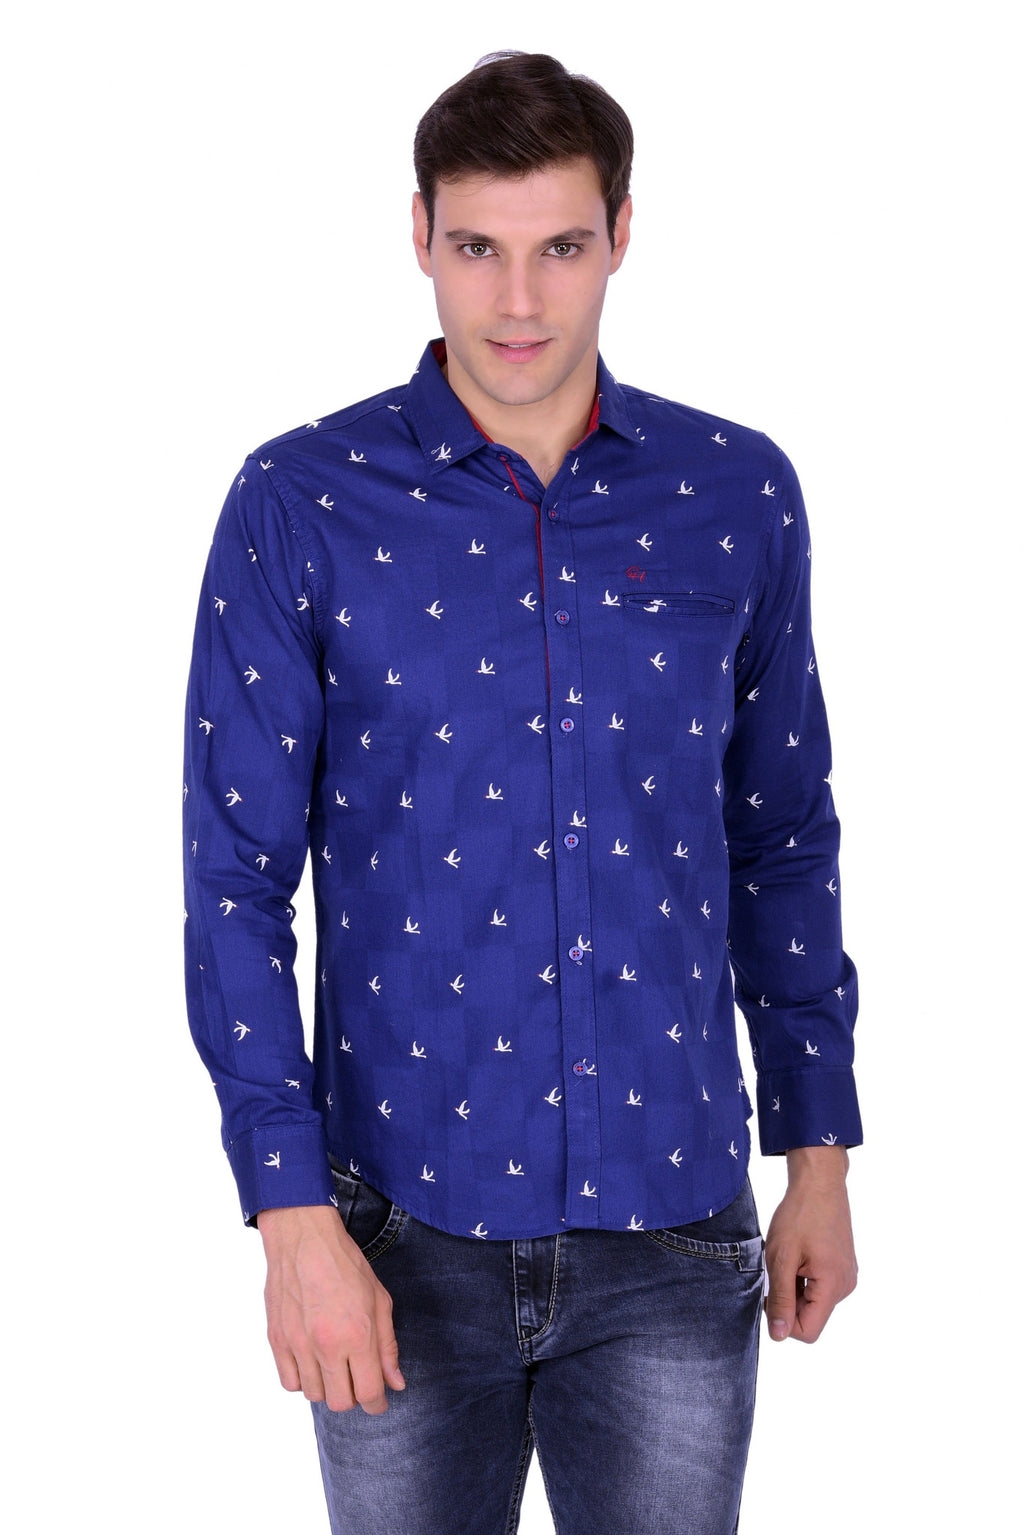 Hoffmen Men's Casual Shirt CR6101